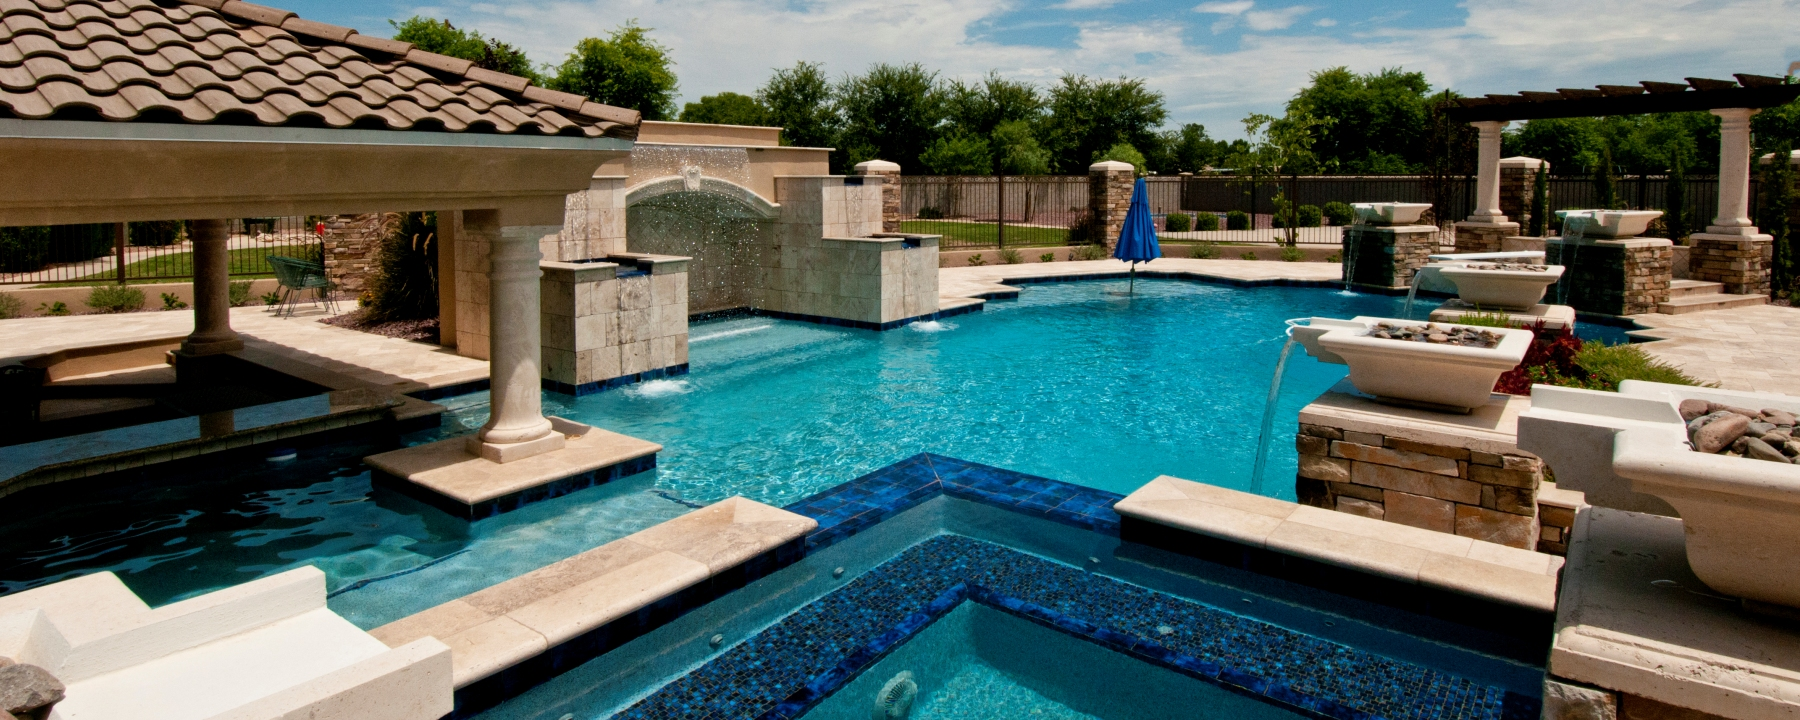 Mesa Precast Products for Hardscape, Landscaping - Wall Caps, Pool Coping, Columns, Planters, Architectural Trim, Fountain